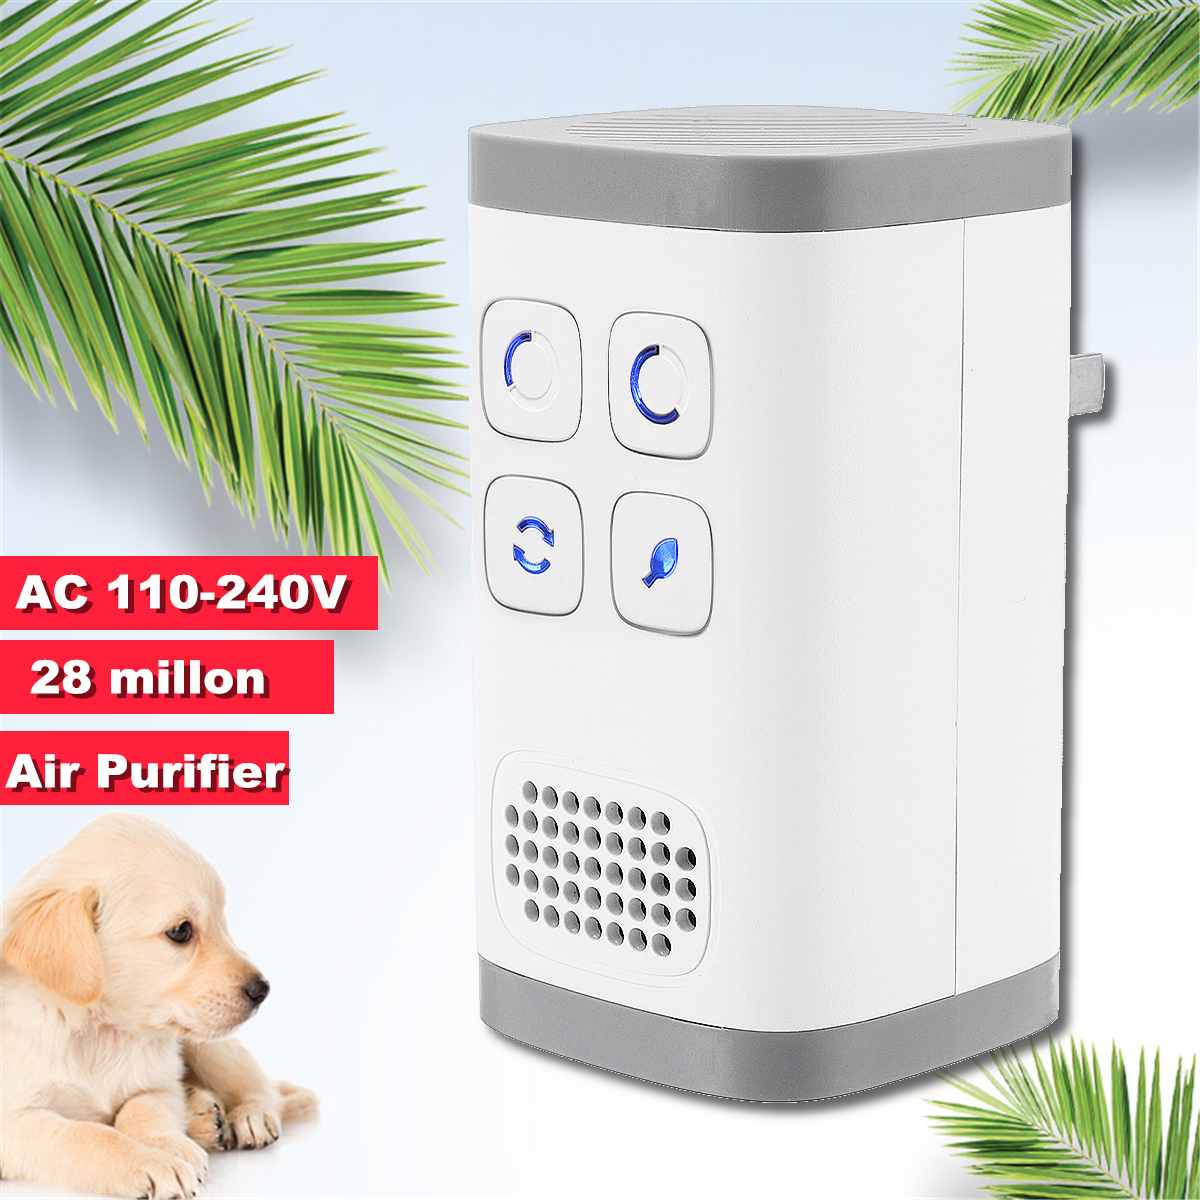 Air Purifier and Ozone Generator with 28 Million Negative Ions for Deodorizing Home and Bathroom 6